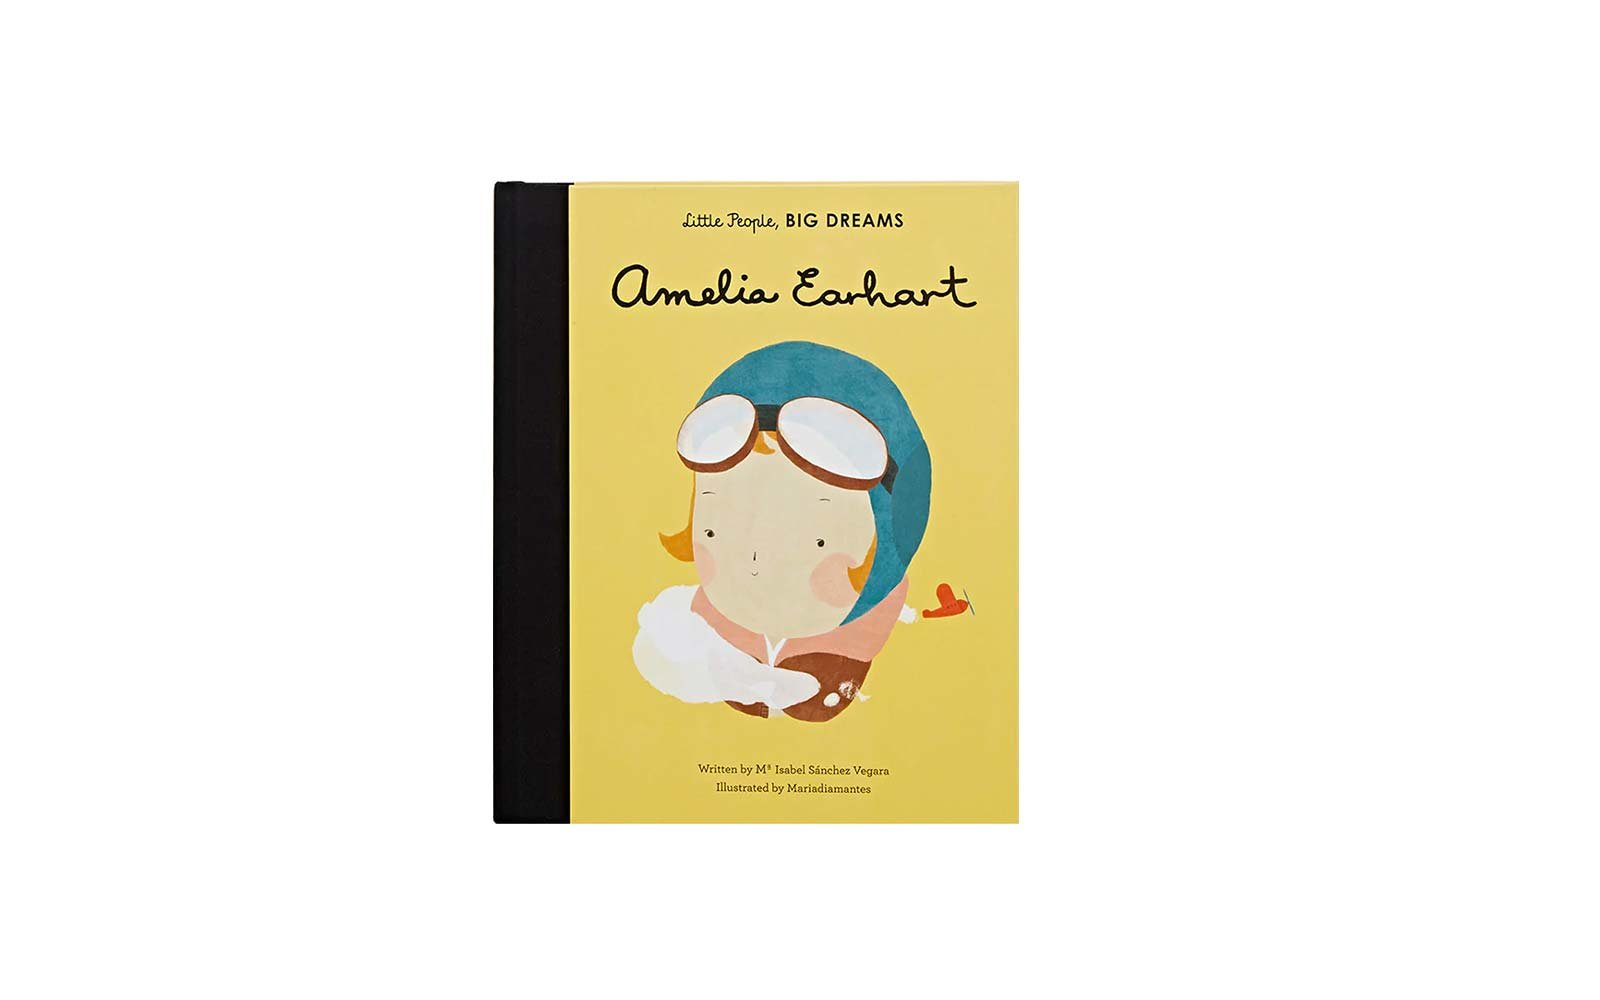 amelia earhart little people big dreams childrens book